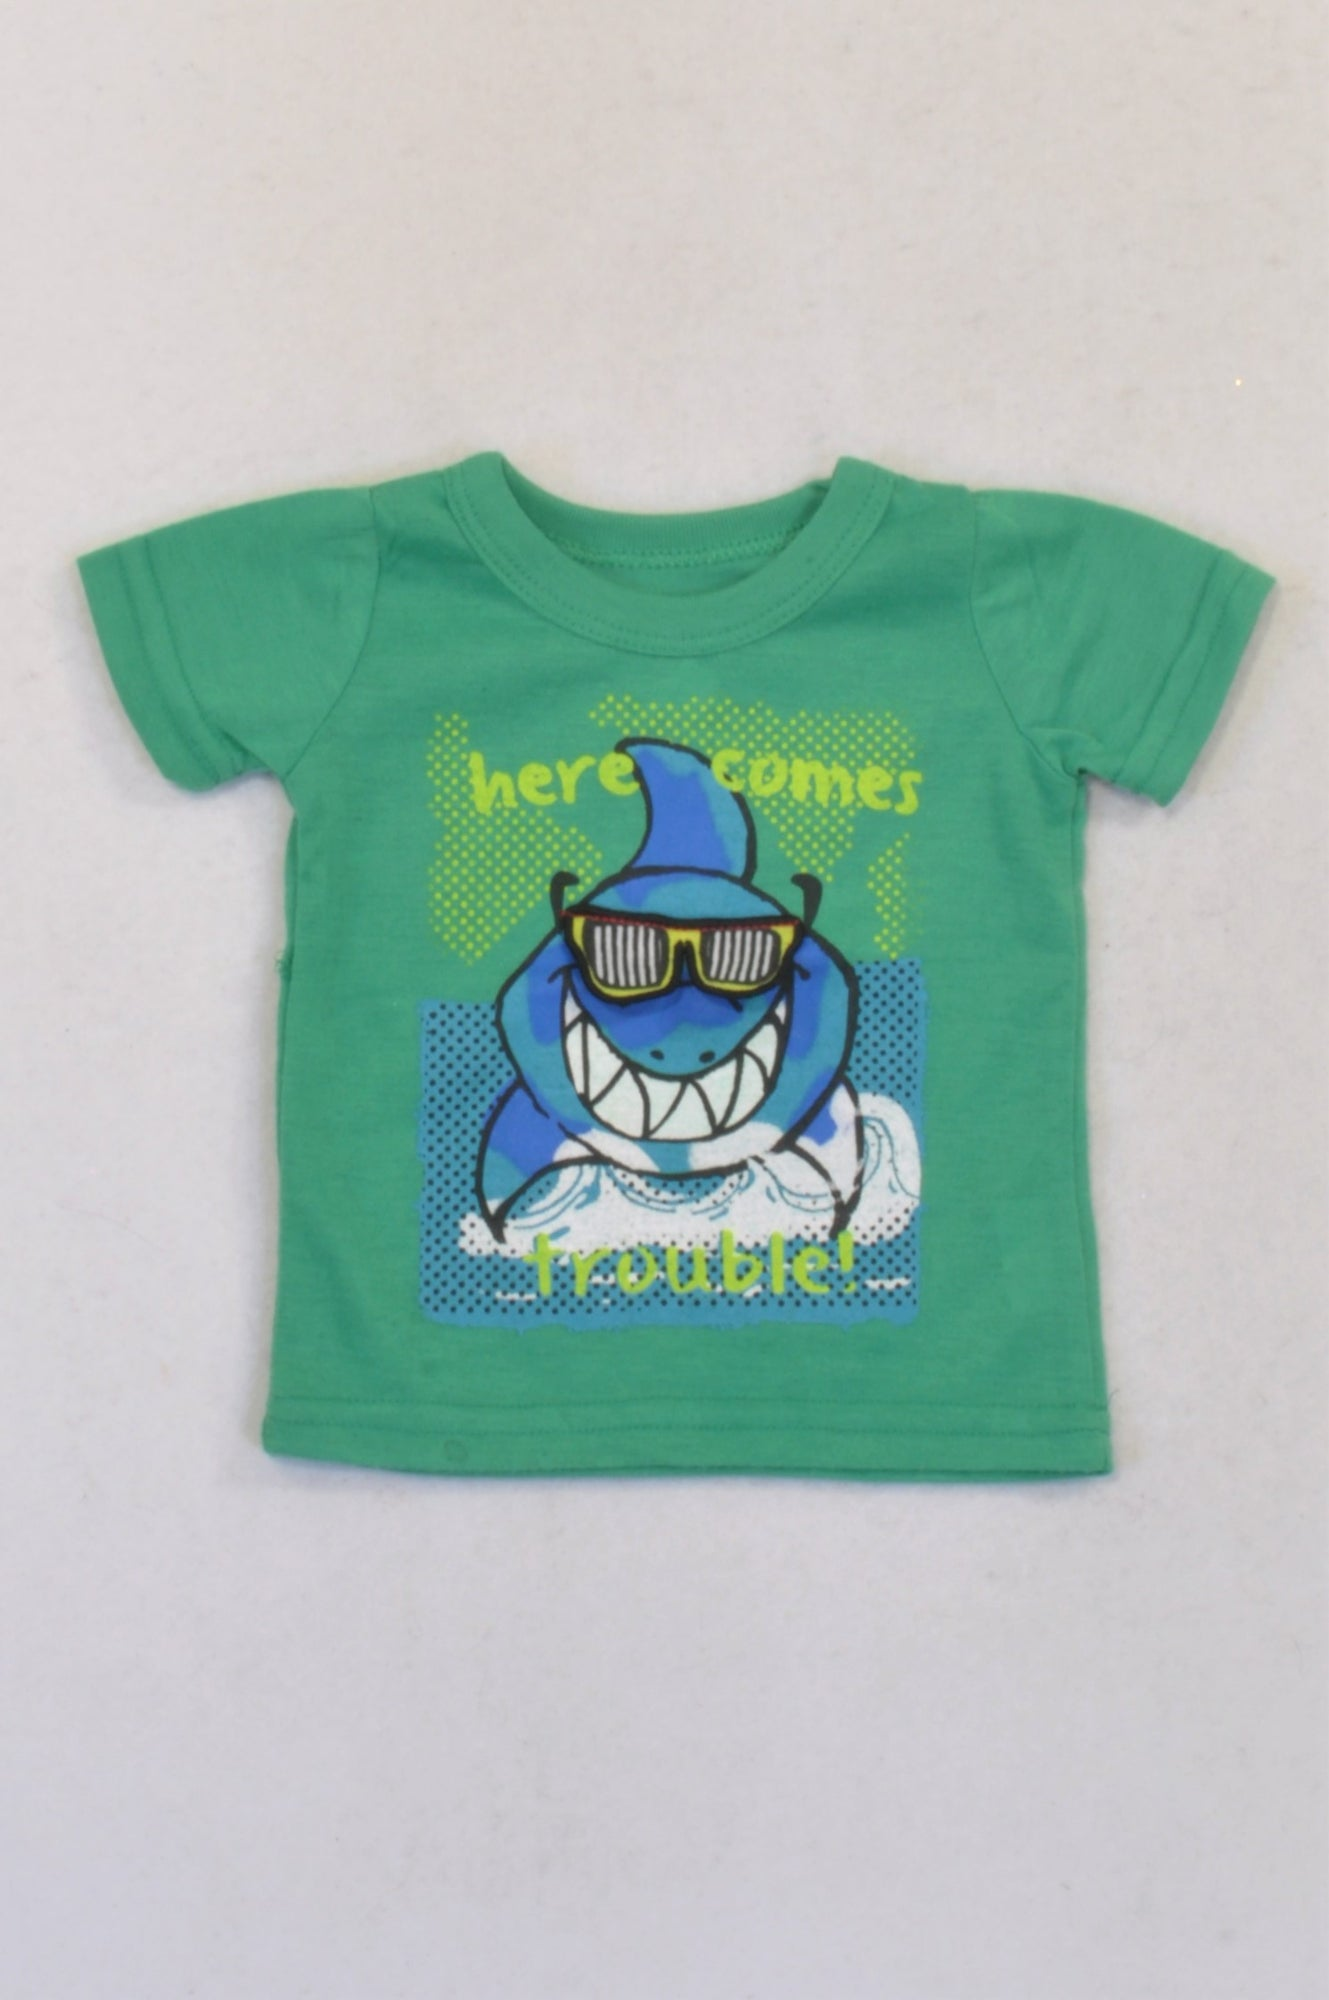 New Pep Green Shark Trouble T-shirt Boys 0-3 months